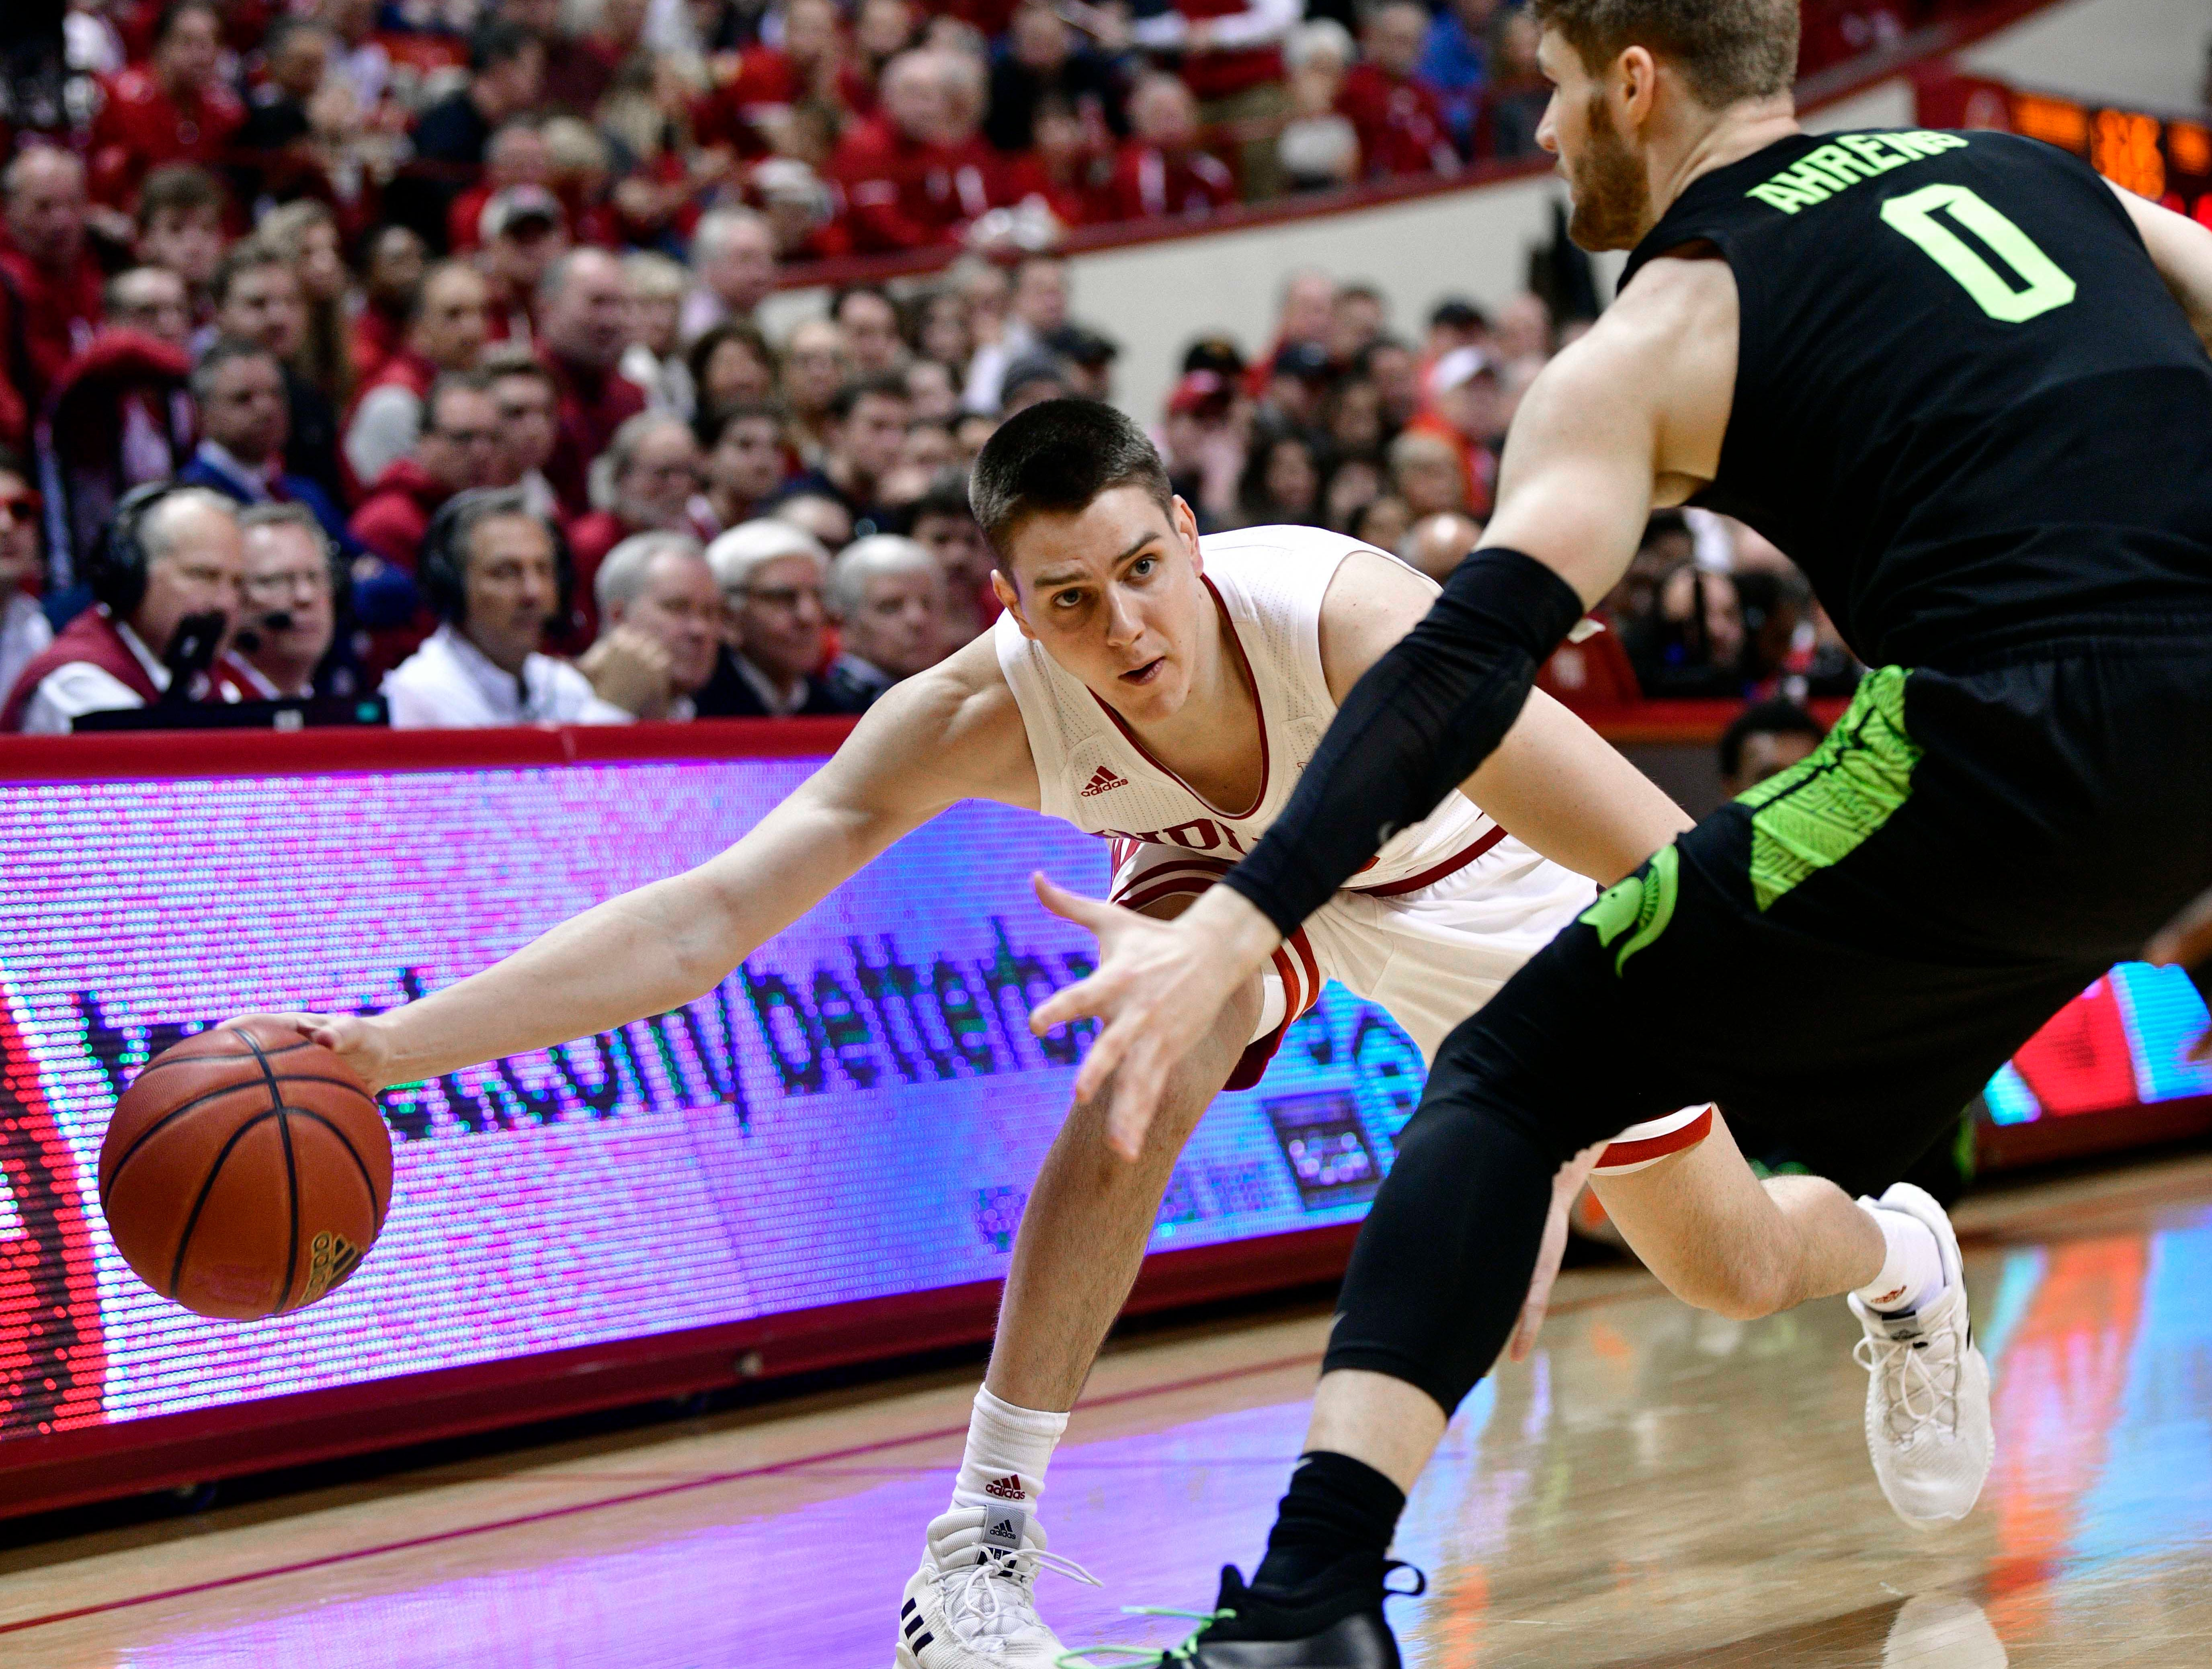 Mar 2, 2019; Bloomington, IN, USA; Indiana Hoosiers guard Zach McRoberts (15) attempts to pass the ball past Michigan State Spartans forward Kyle Ahrens (0) during the first half of the game at Assembly Hall. Mandatory Credit: Marc Lebryk-USA TODAY Sports